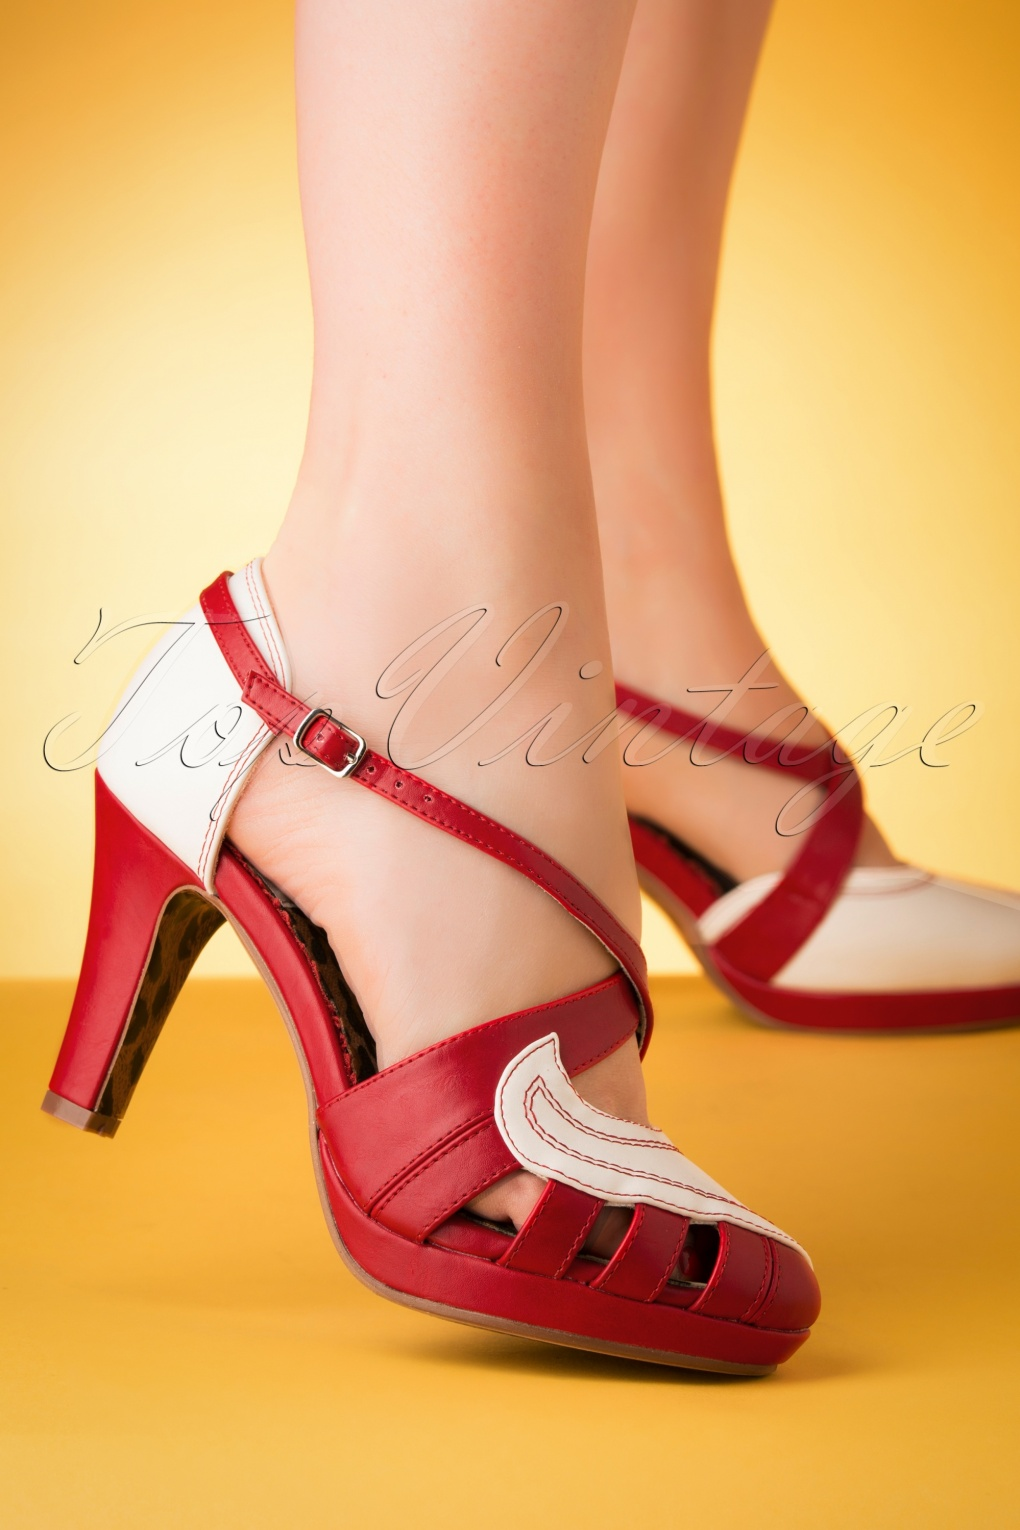 1950s Style Shoes | Heels, Flats, Saddle Shoes 50s Angie Pumps in White and Red £50.00 AT vintagedancer.com